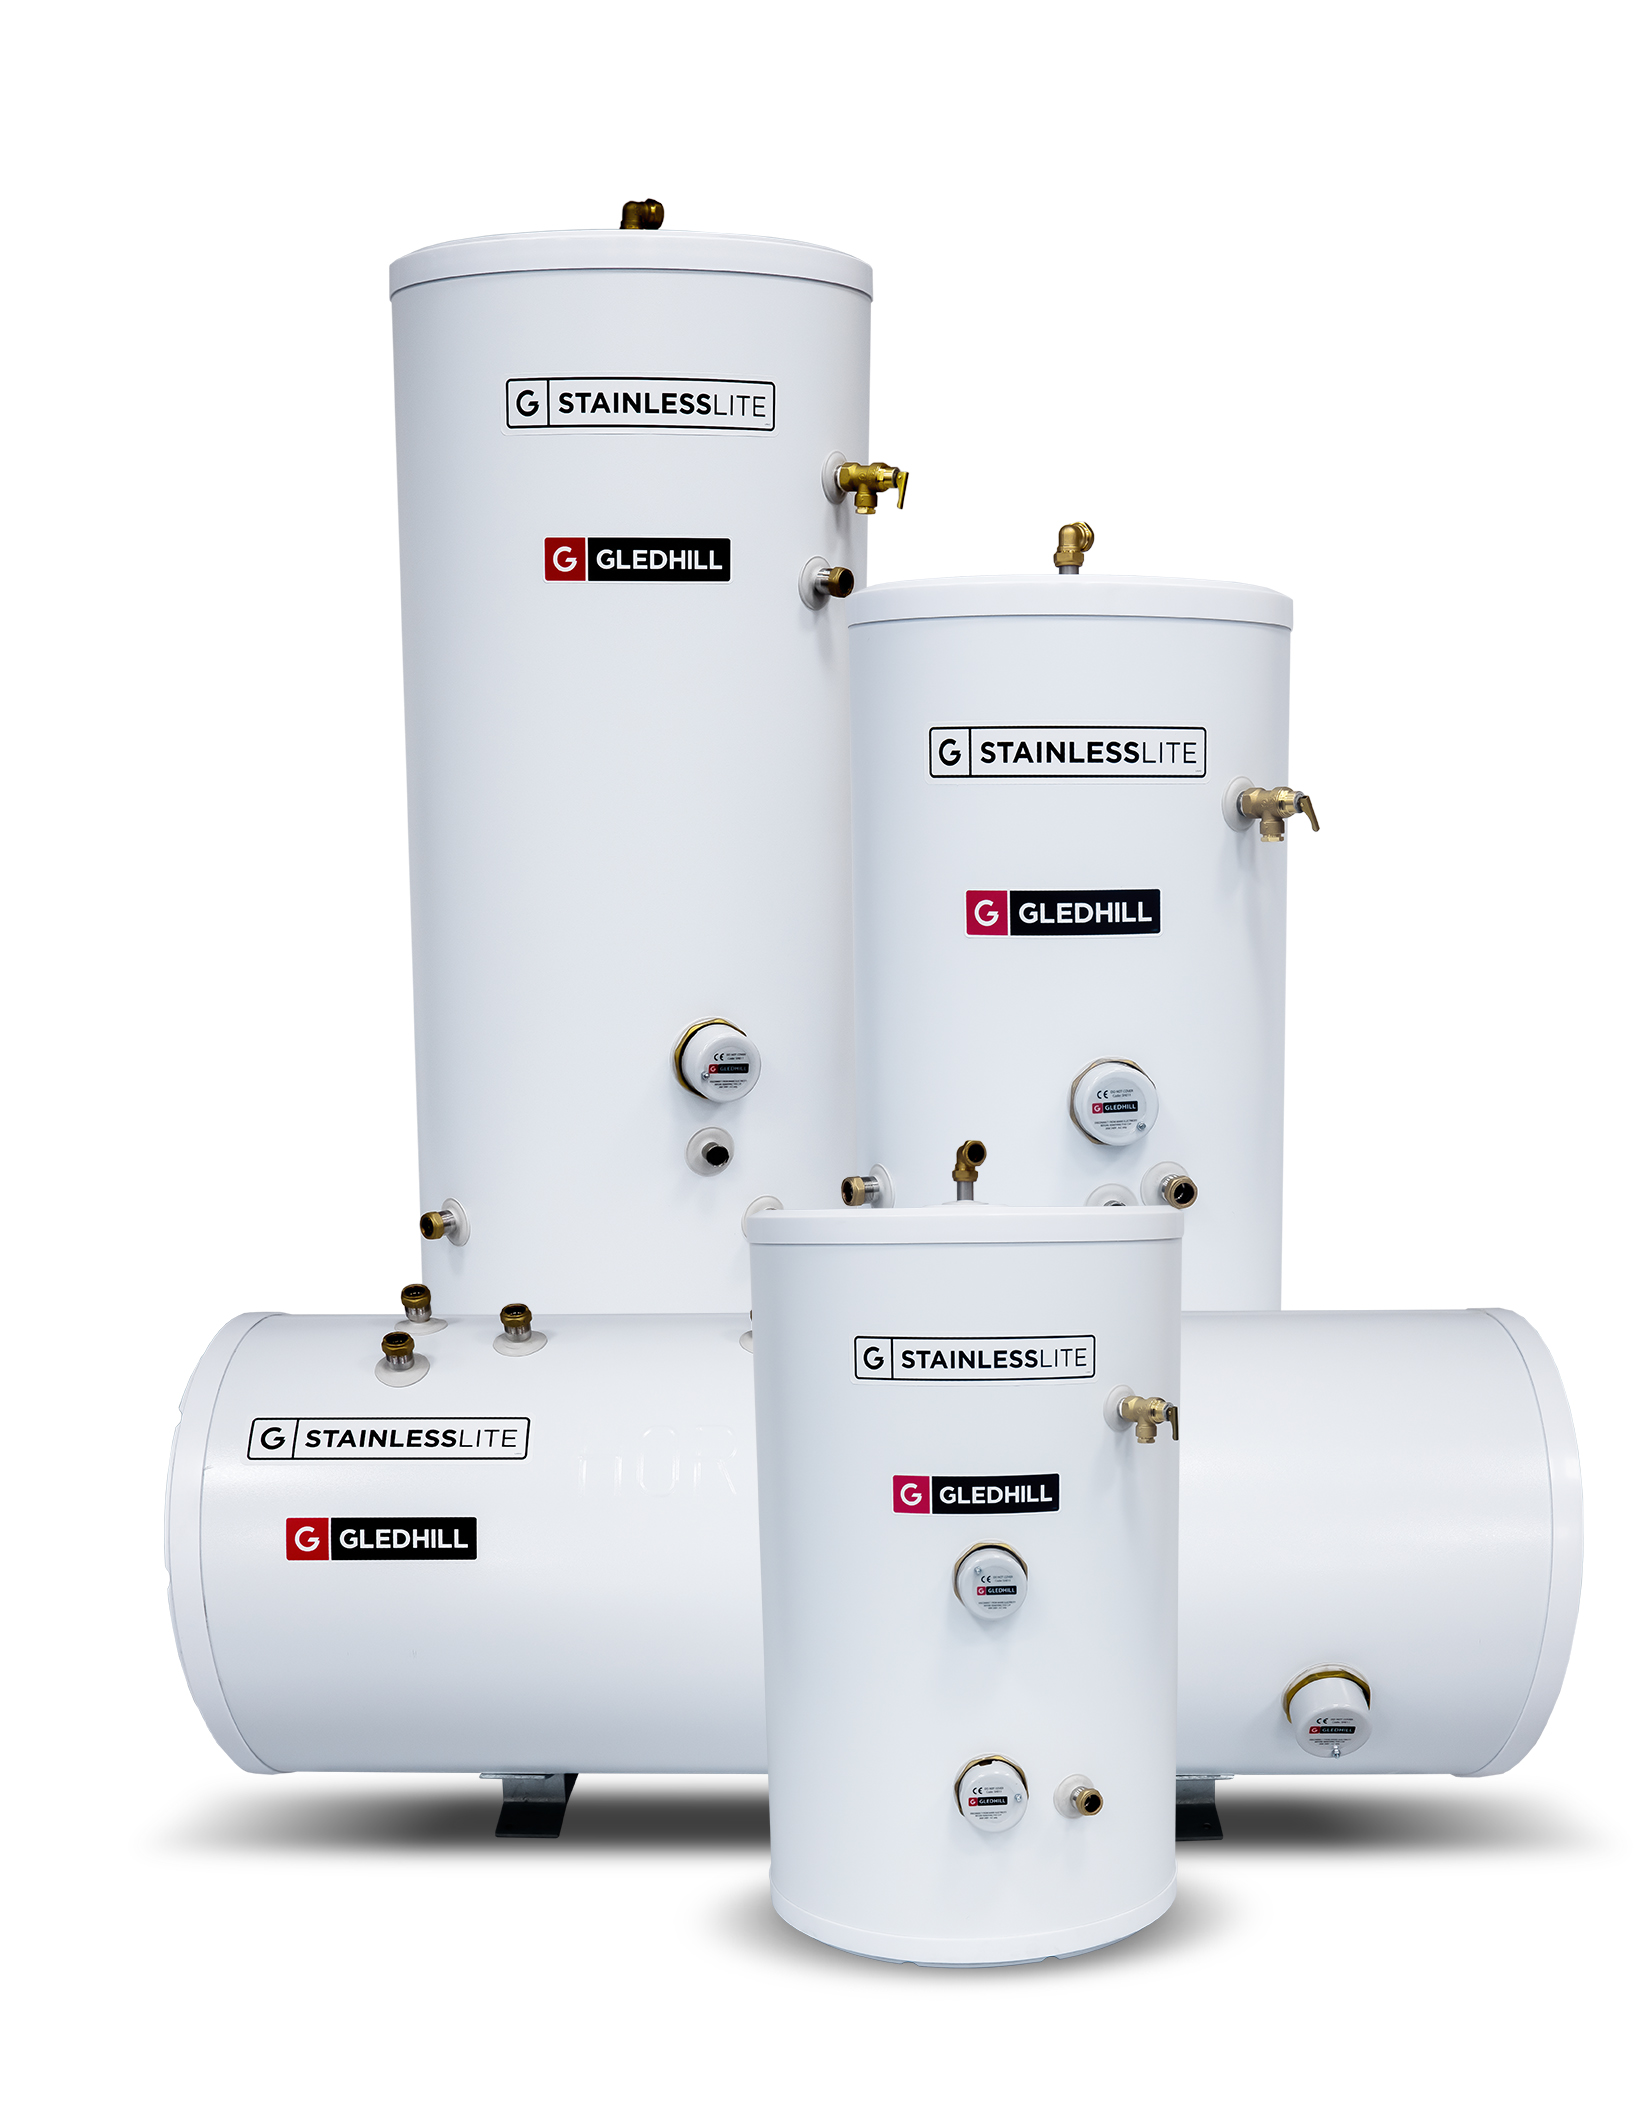 StainlessLite unvented cylinders